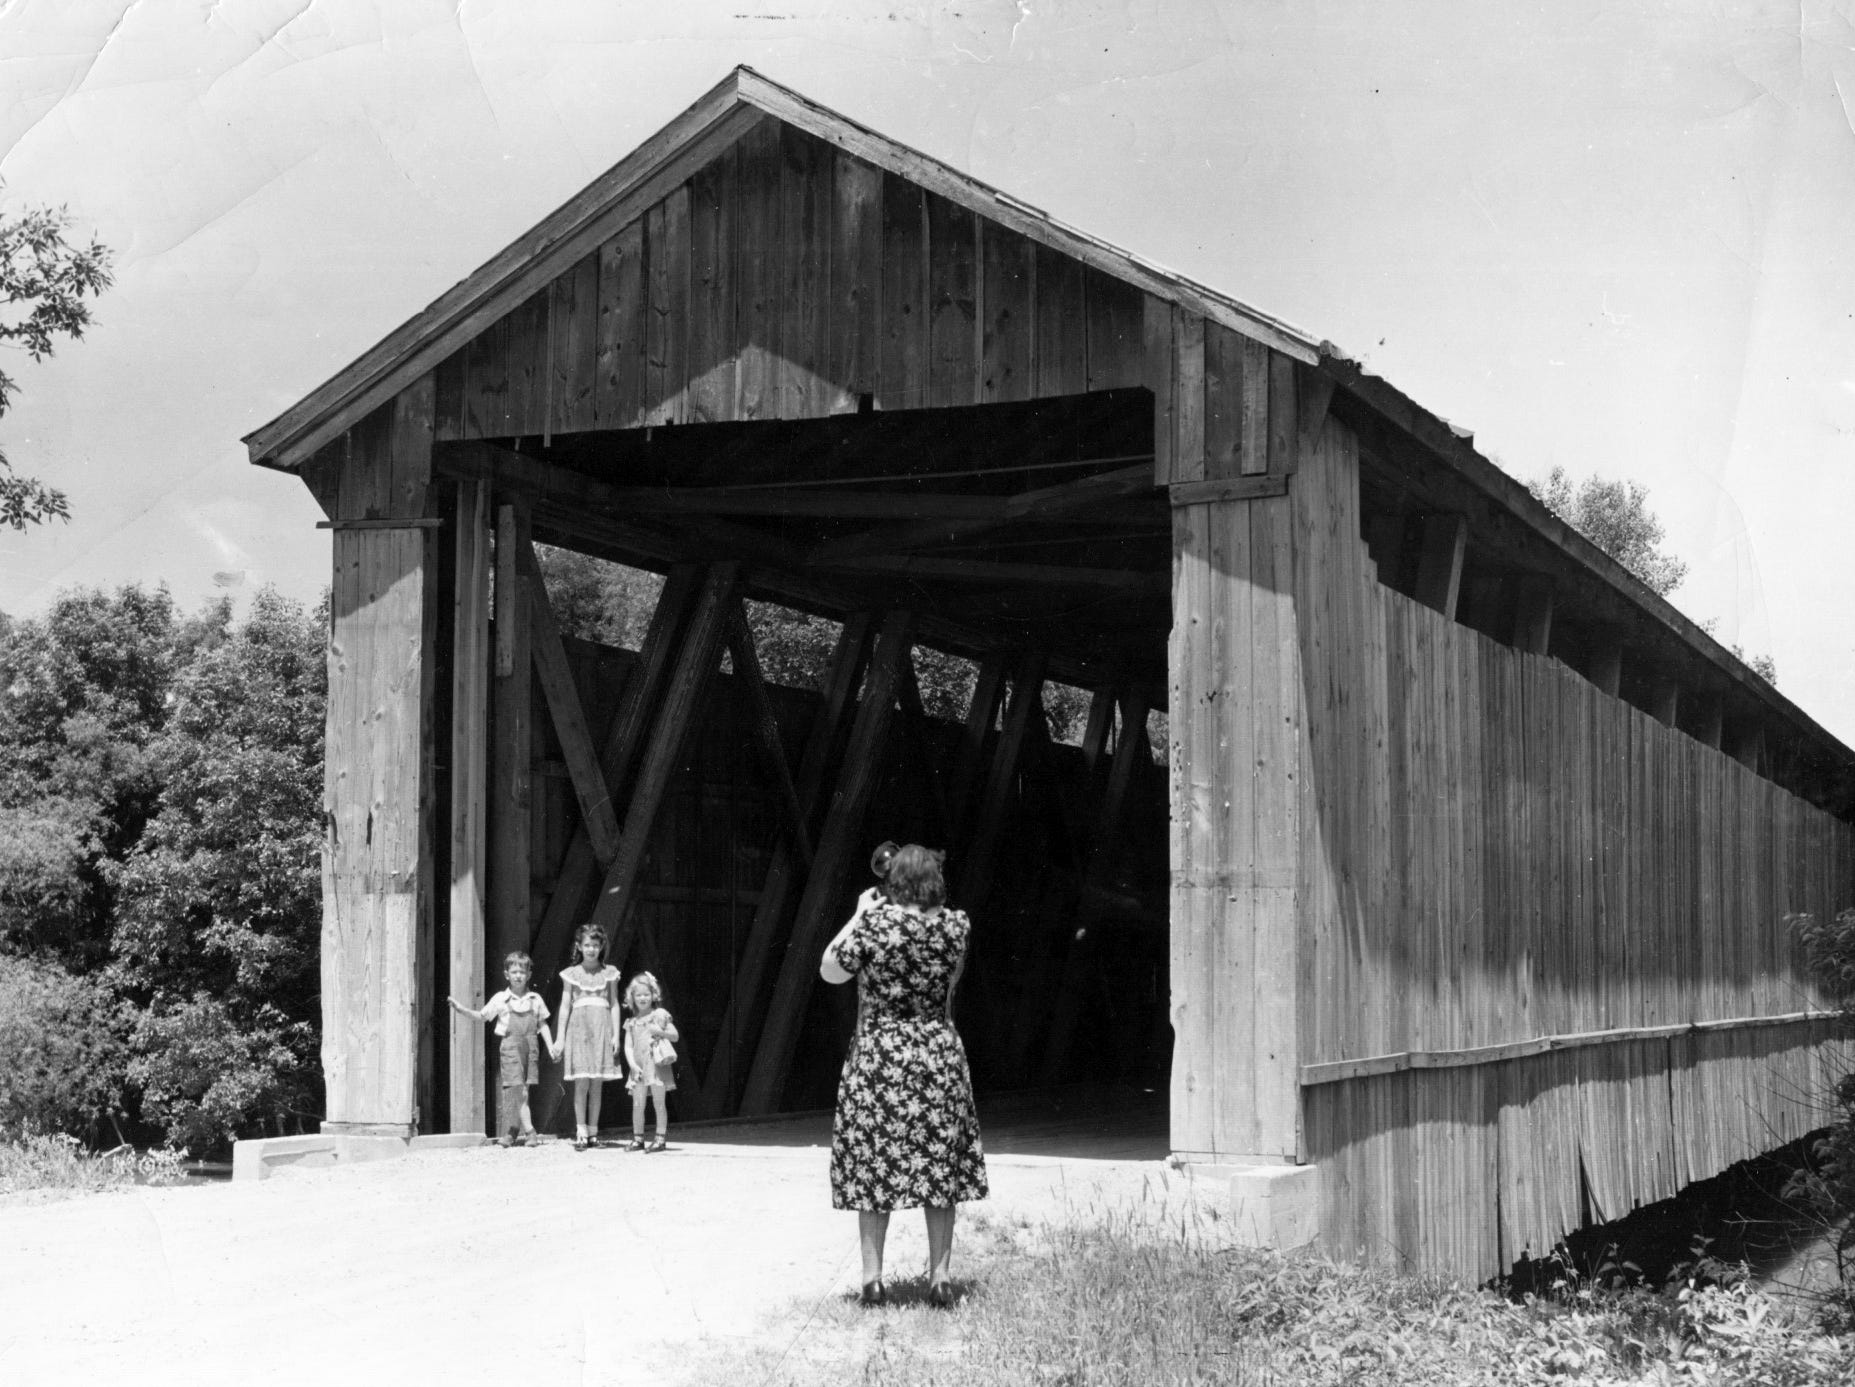 Covered bridge over the Wabash River near Berne, Indiana in 1956.